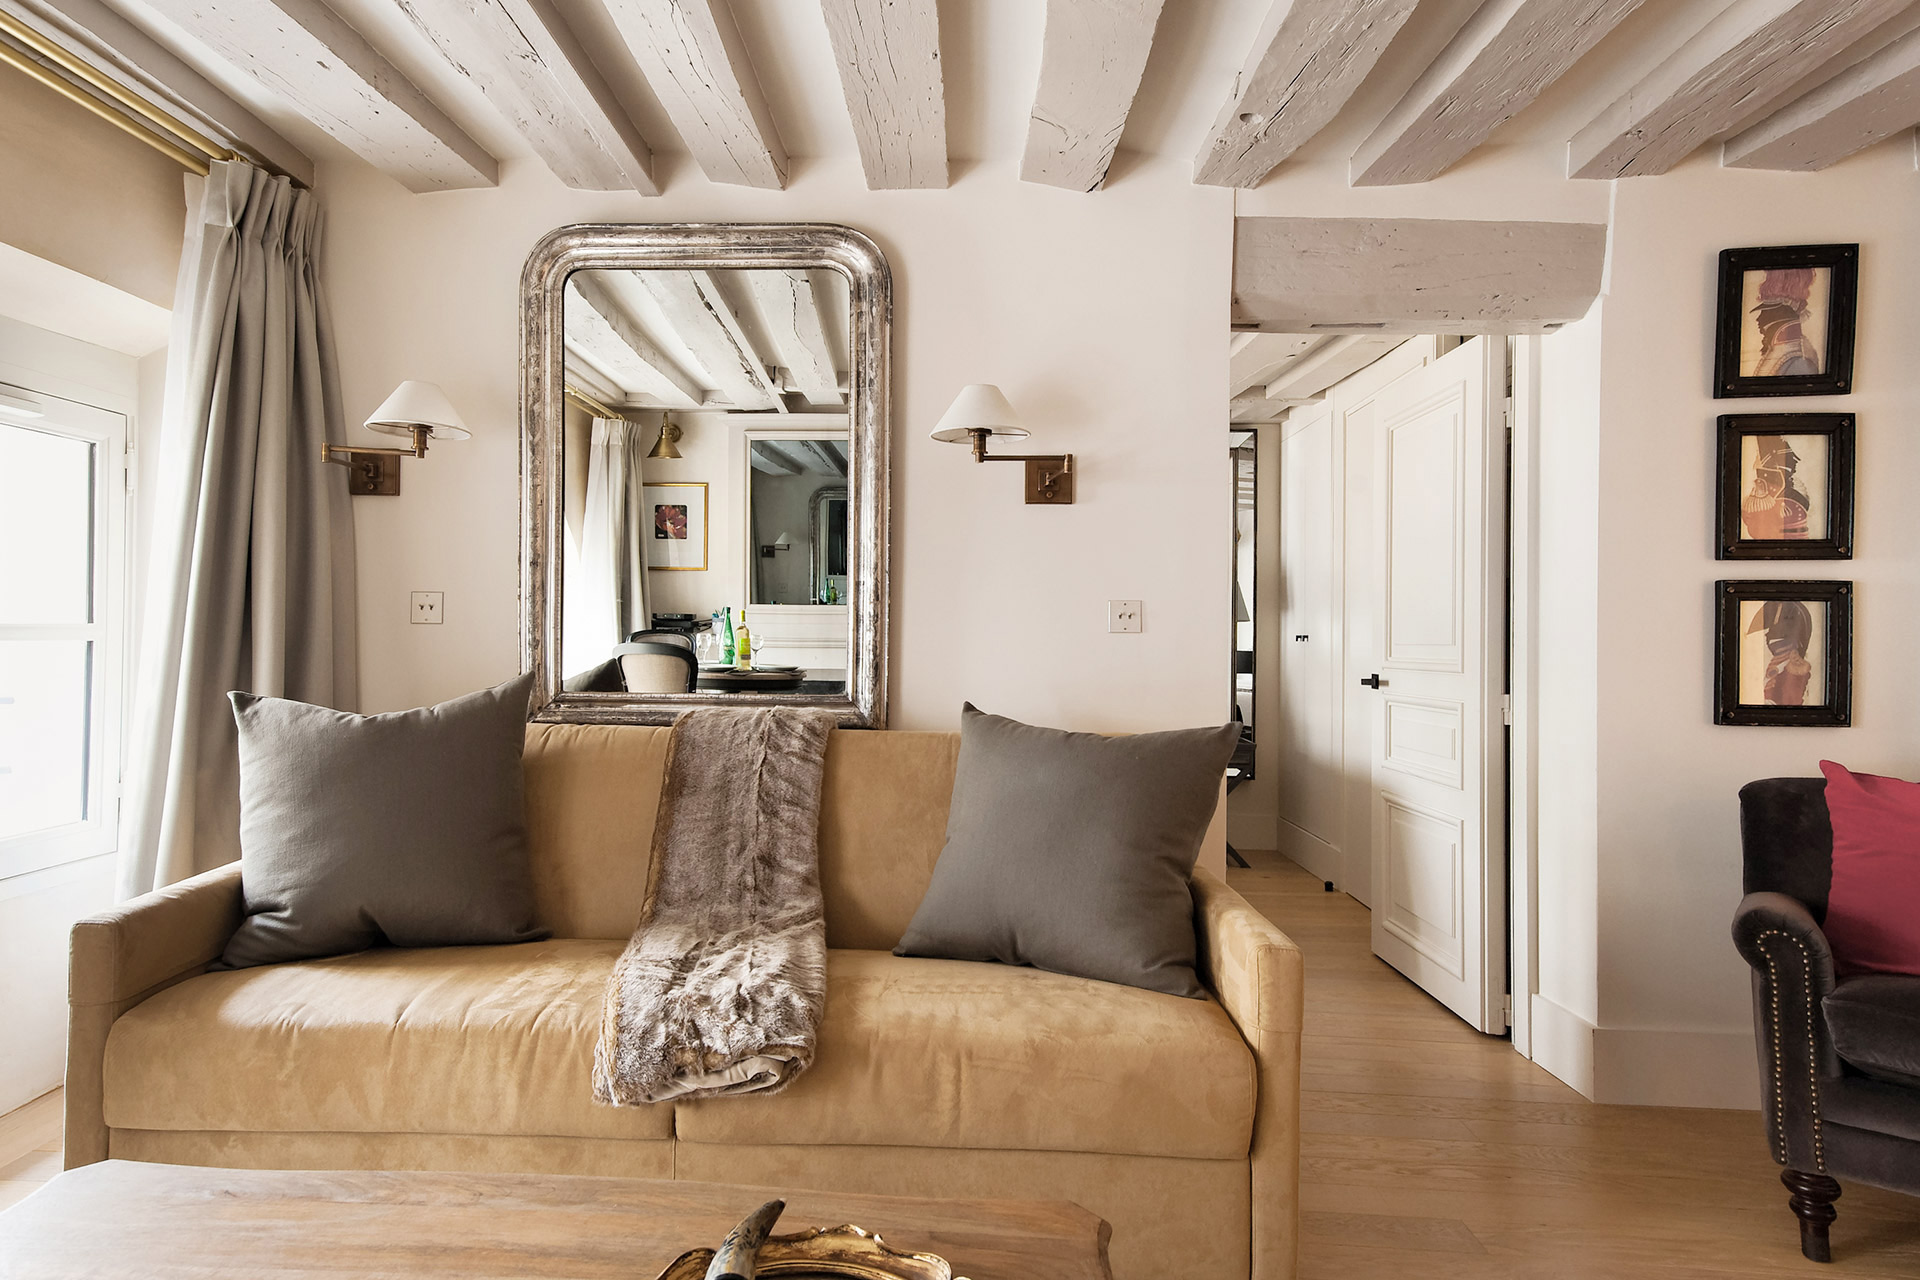 Furnishing is both simplistic and glamorous in the Anjou vacation rental offered by Paris Perfect